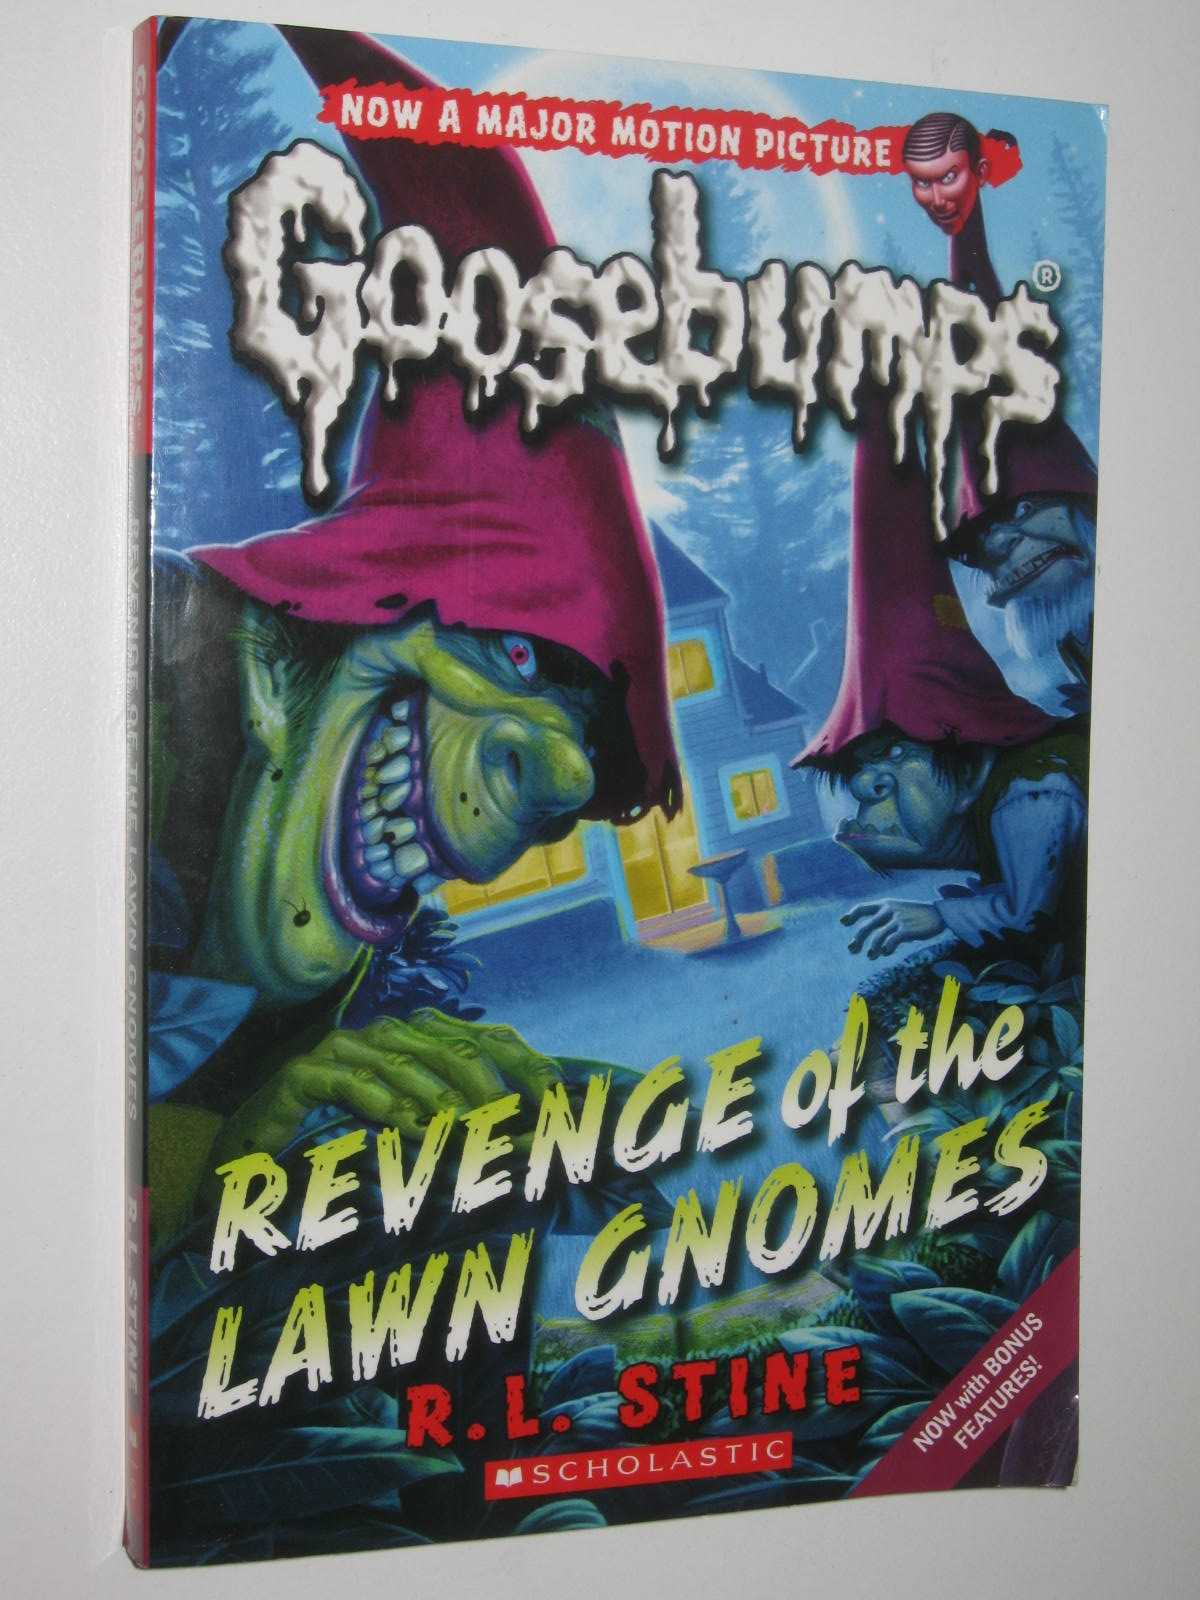 Image for Revenge of the Lawn Gnomes - Goosebumps Series #19